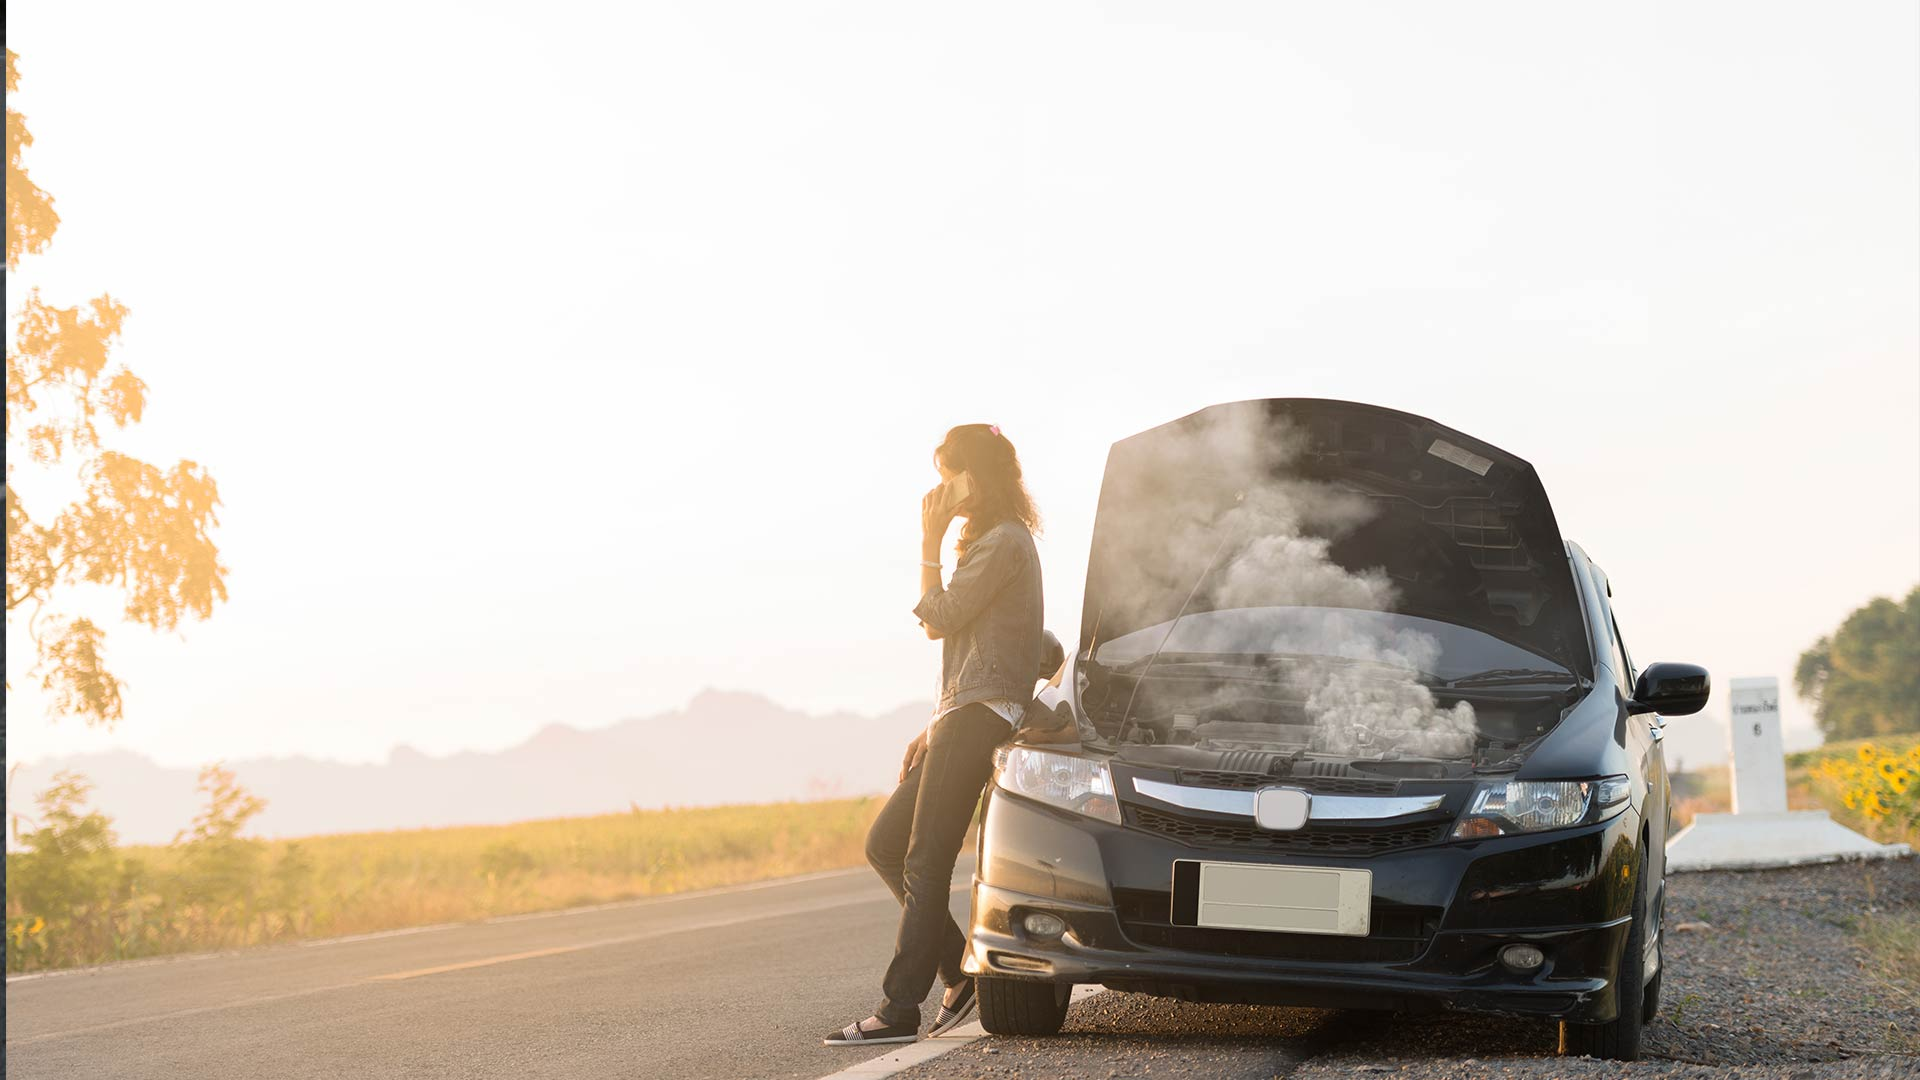 Woman standing by a broken down car